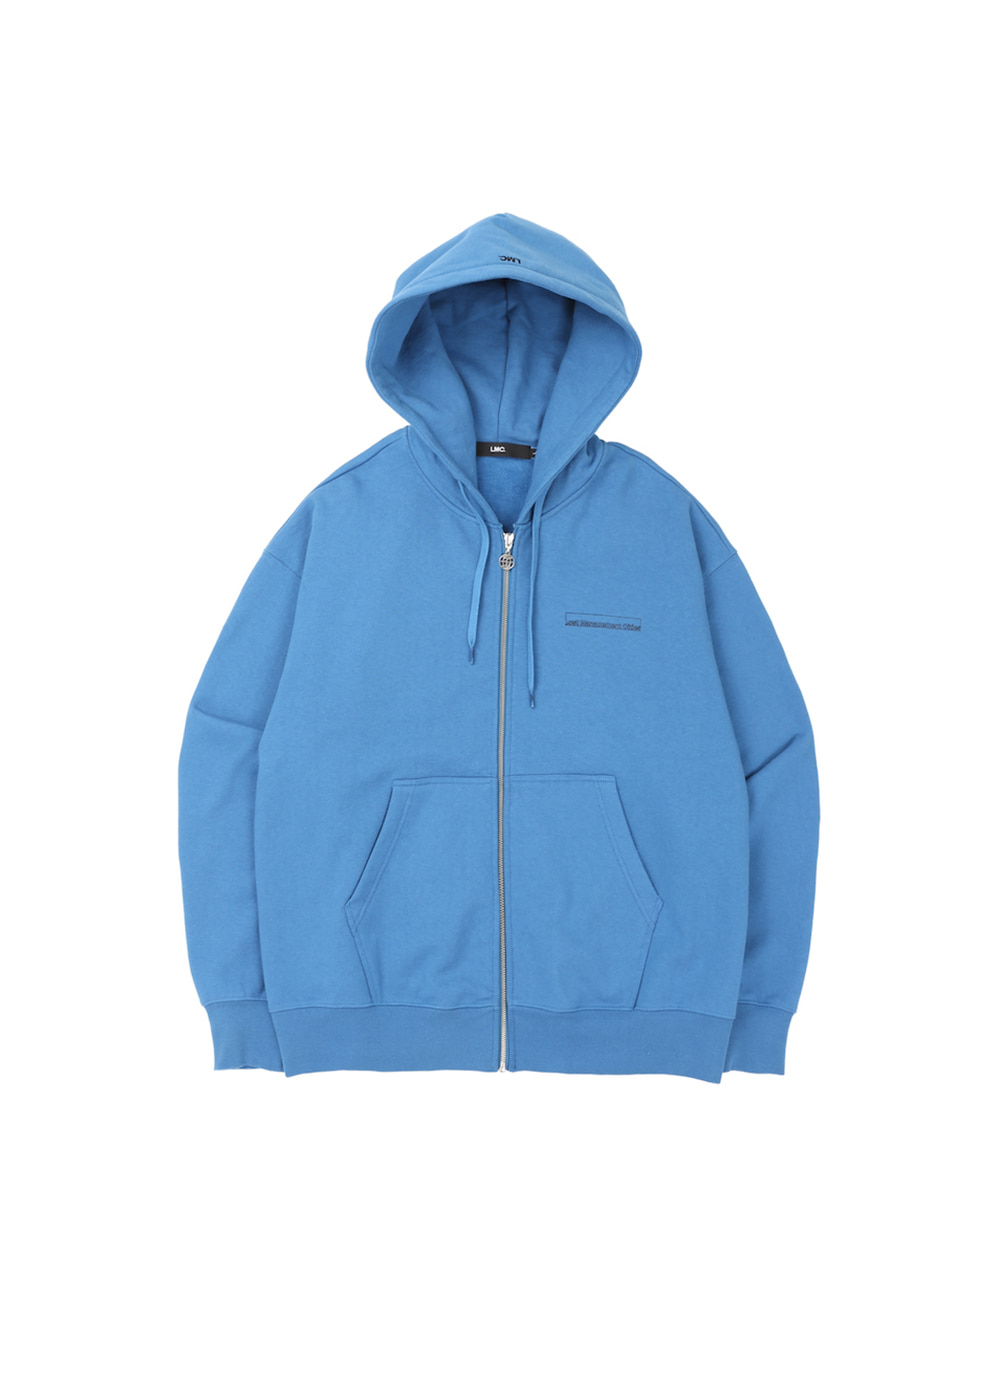 LMC FN BAR LOGO ZIP-UP HOODIE vtg blue